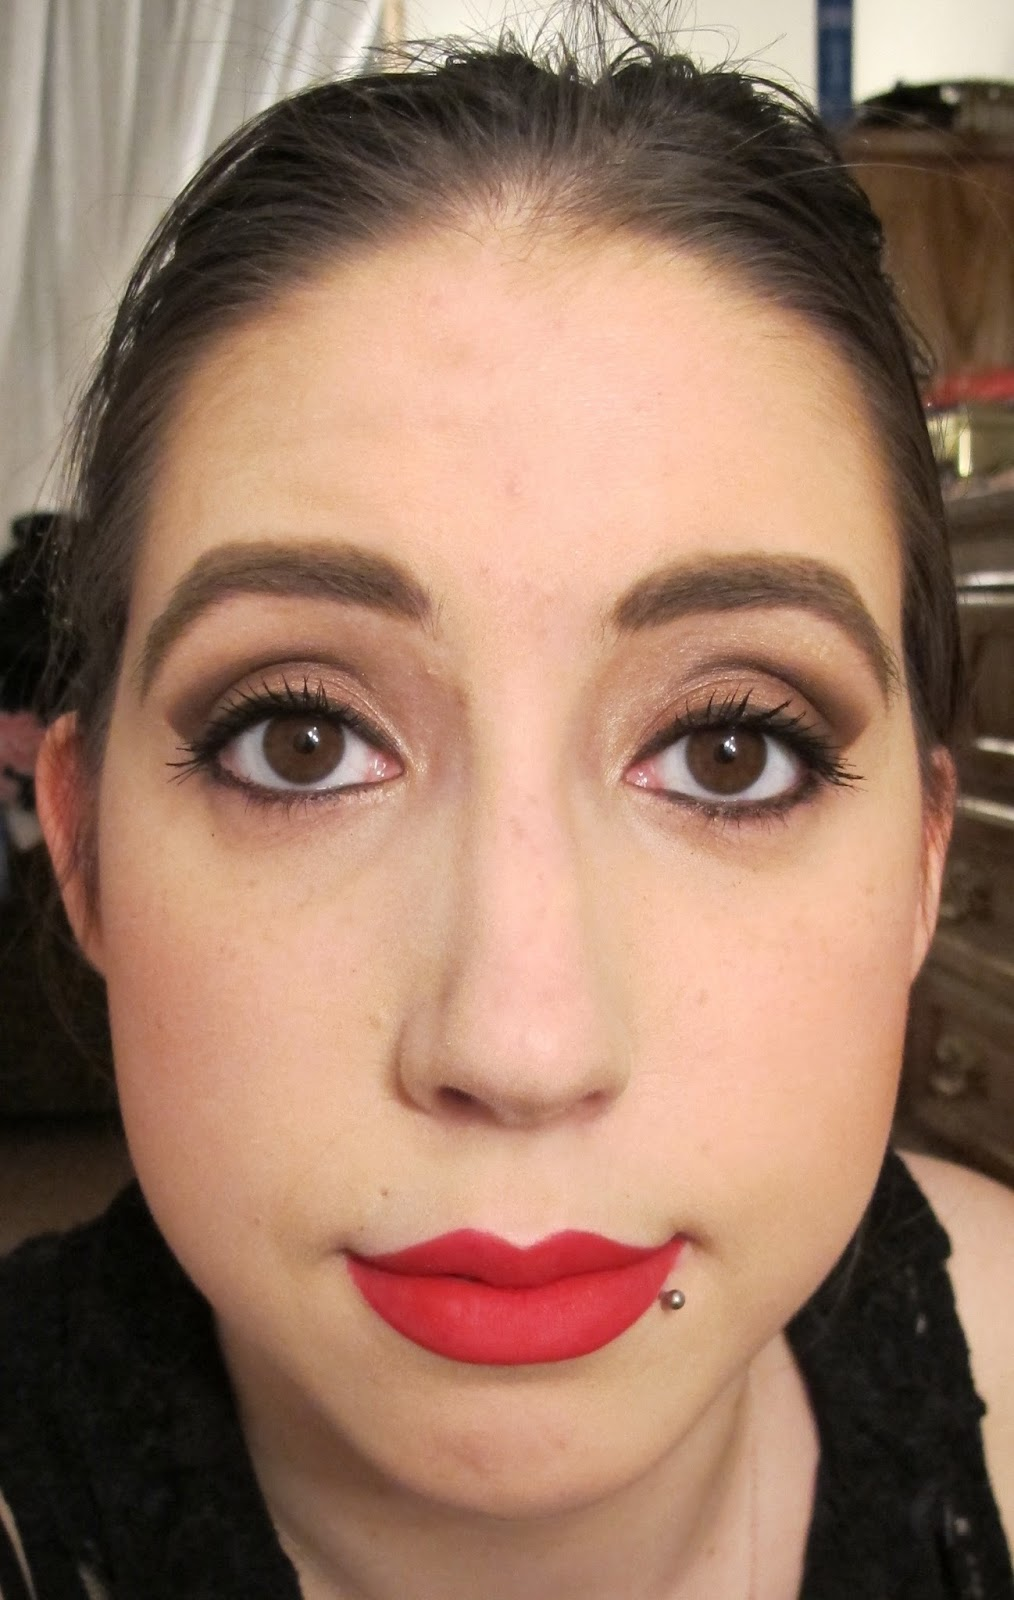 Mac Look In A Box 2016 Summer Collection: Steph Stud Makeup: Fall Makeup Look Using MAC